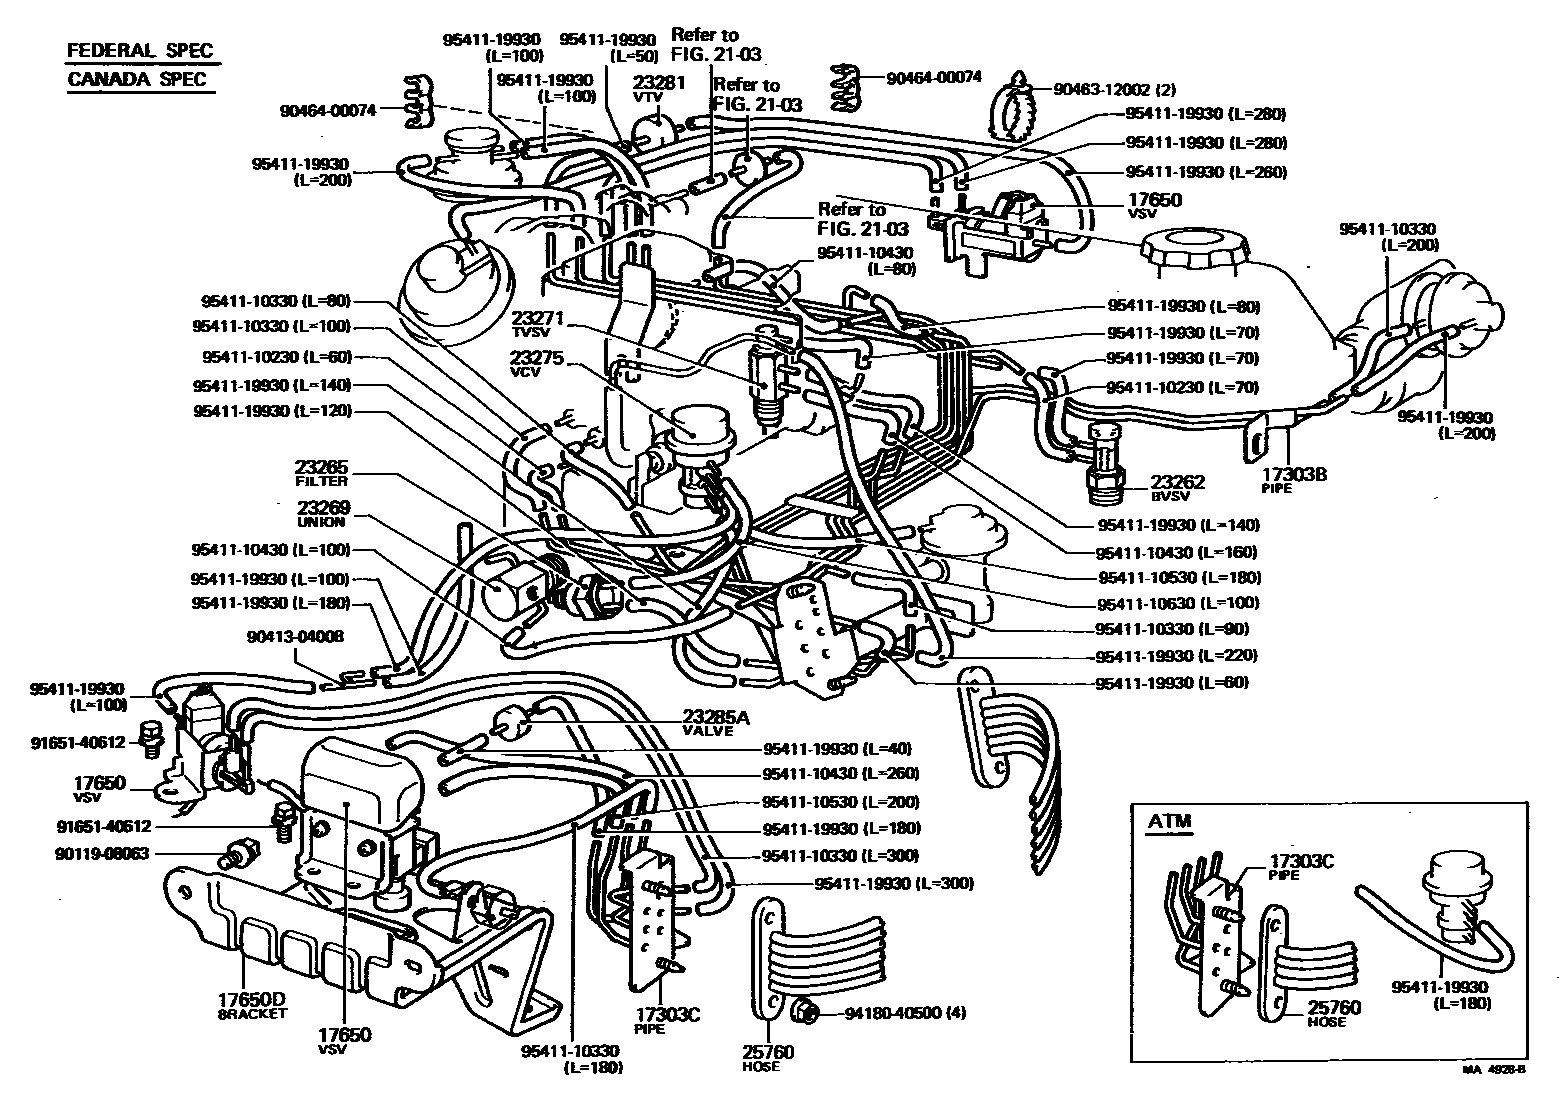 1992 toyota camry engine diagram wiring diagram sheet 1988 camry parts diagram